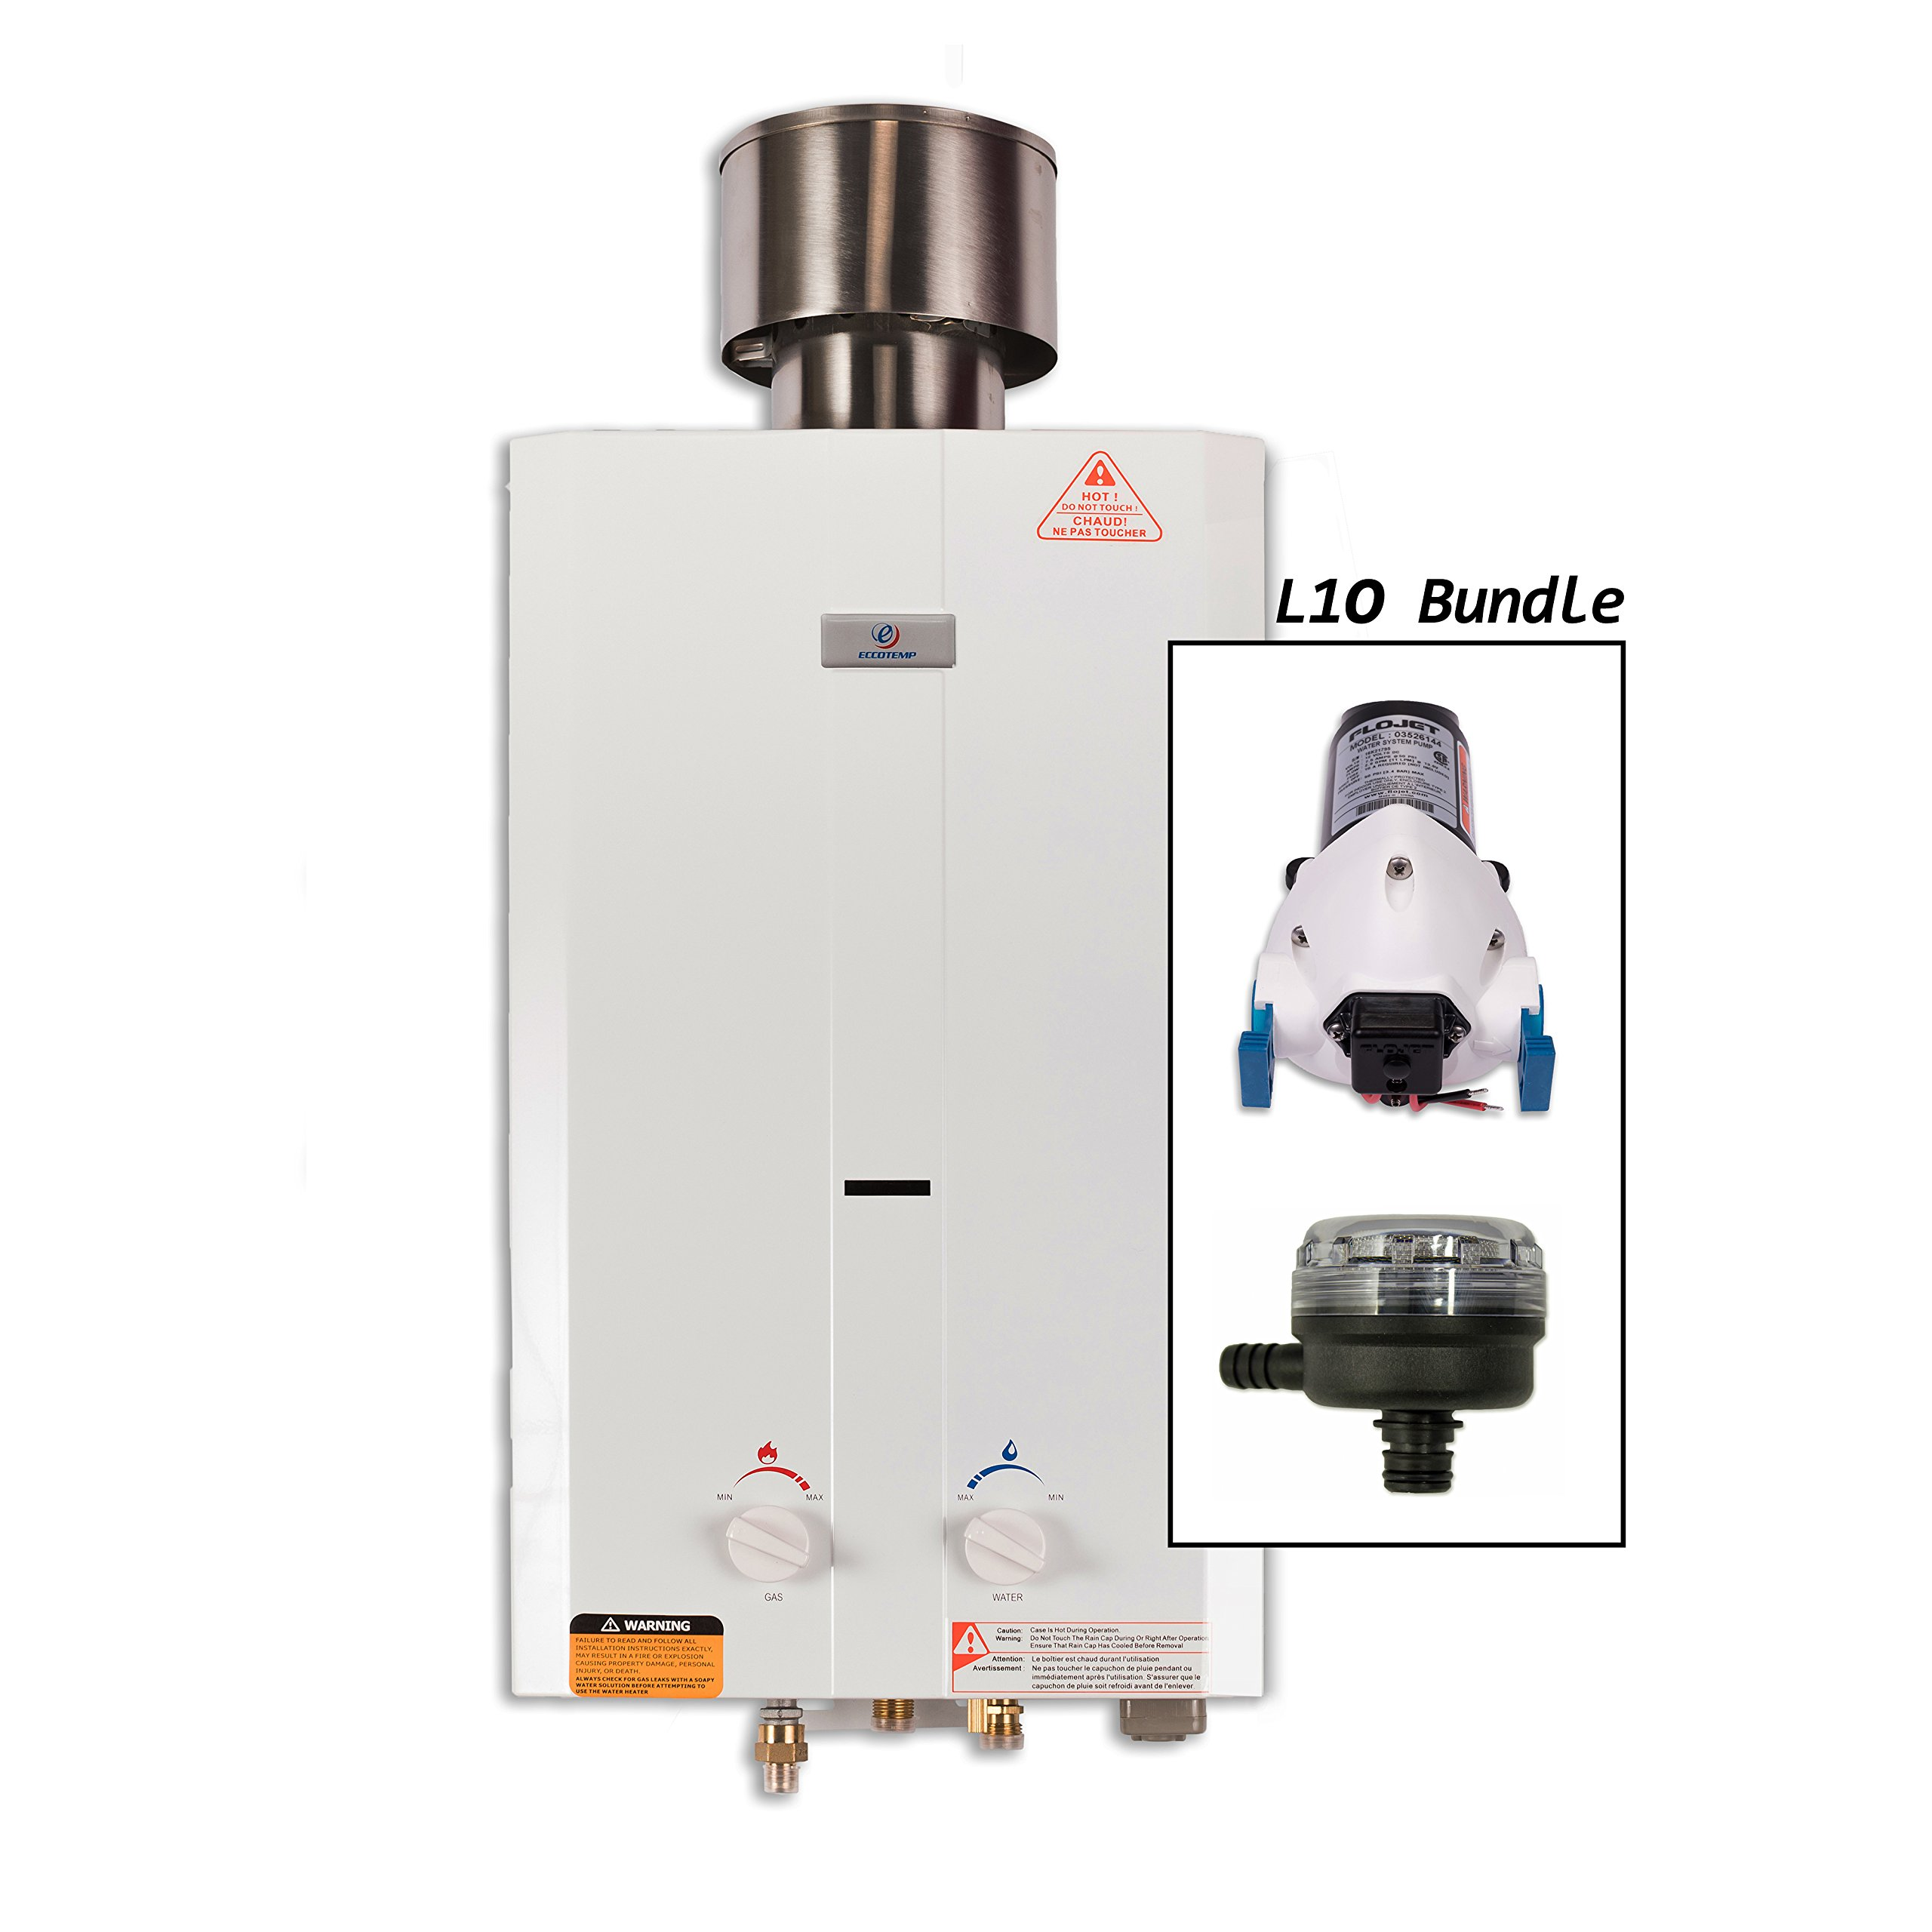 Eccotemp L10 Portable Tankless Water Heater w/ Flojet Pump, Strainer & Shower set by Eccotemp